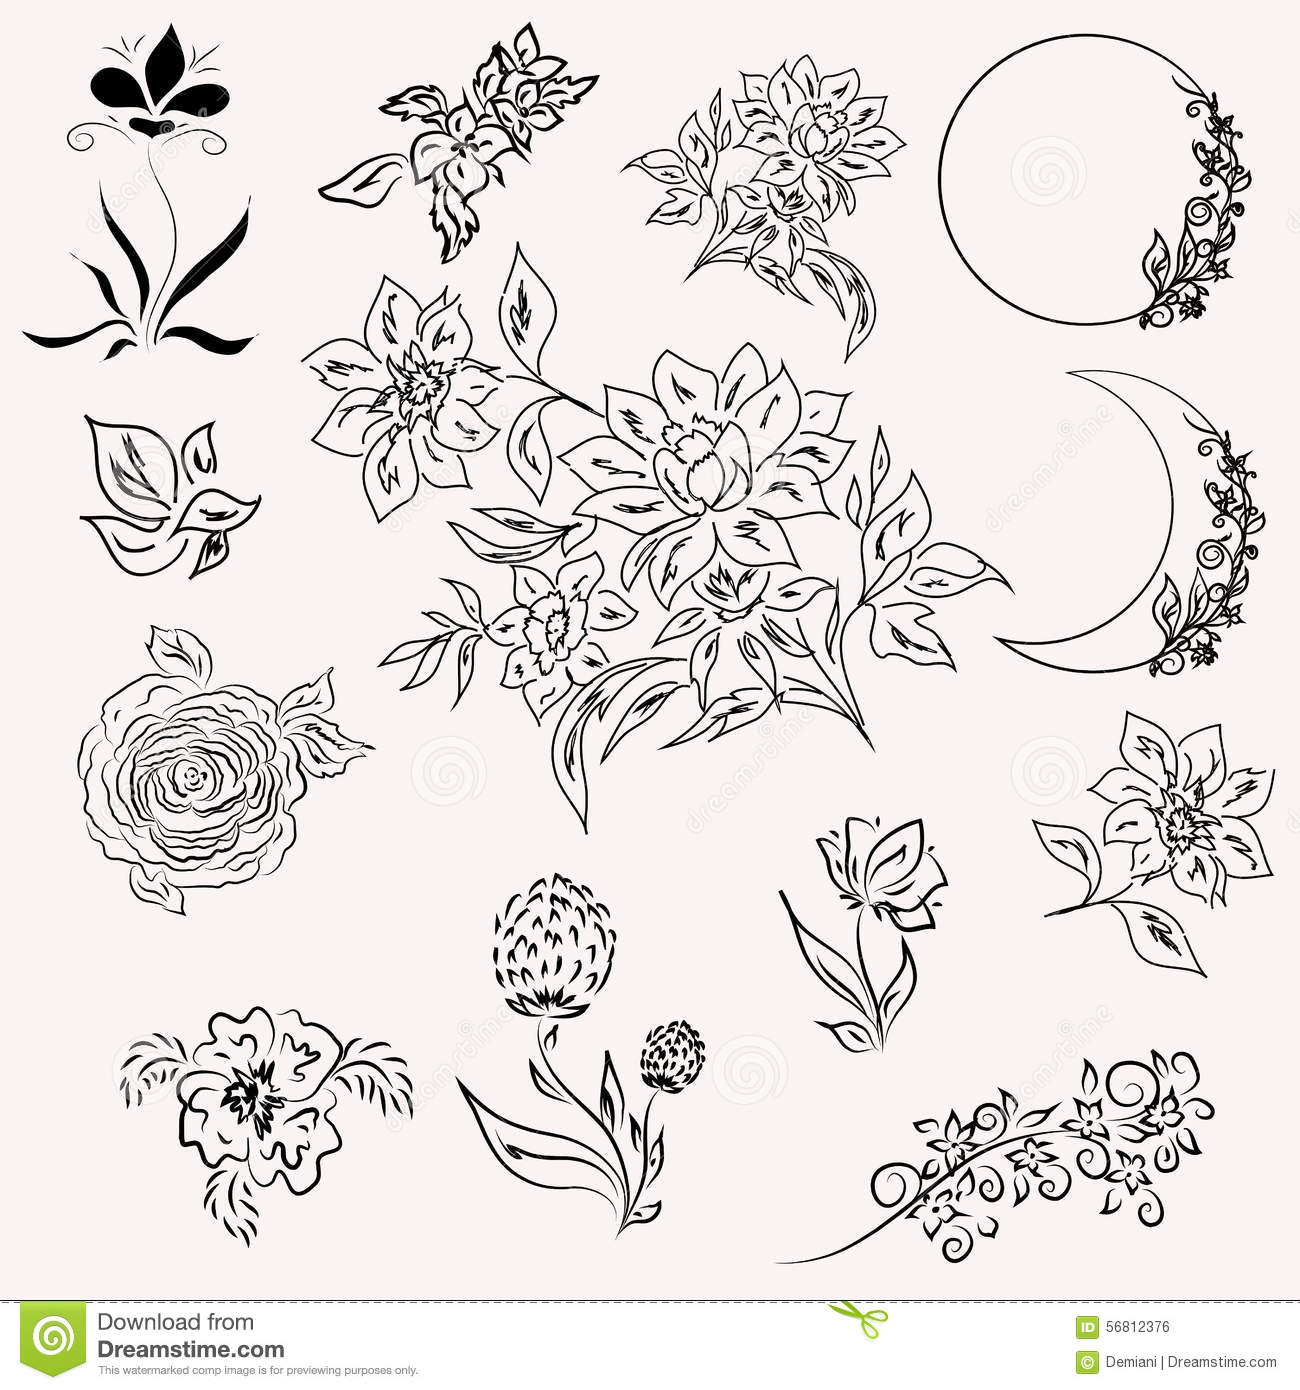 Set of floral elements stock vector. Illustration of other - 56812376